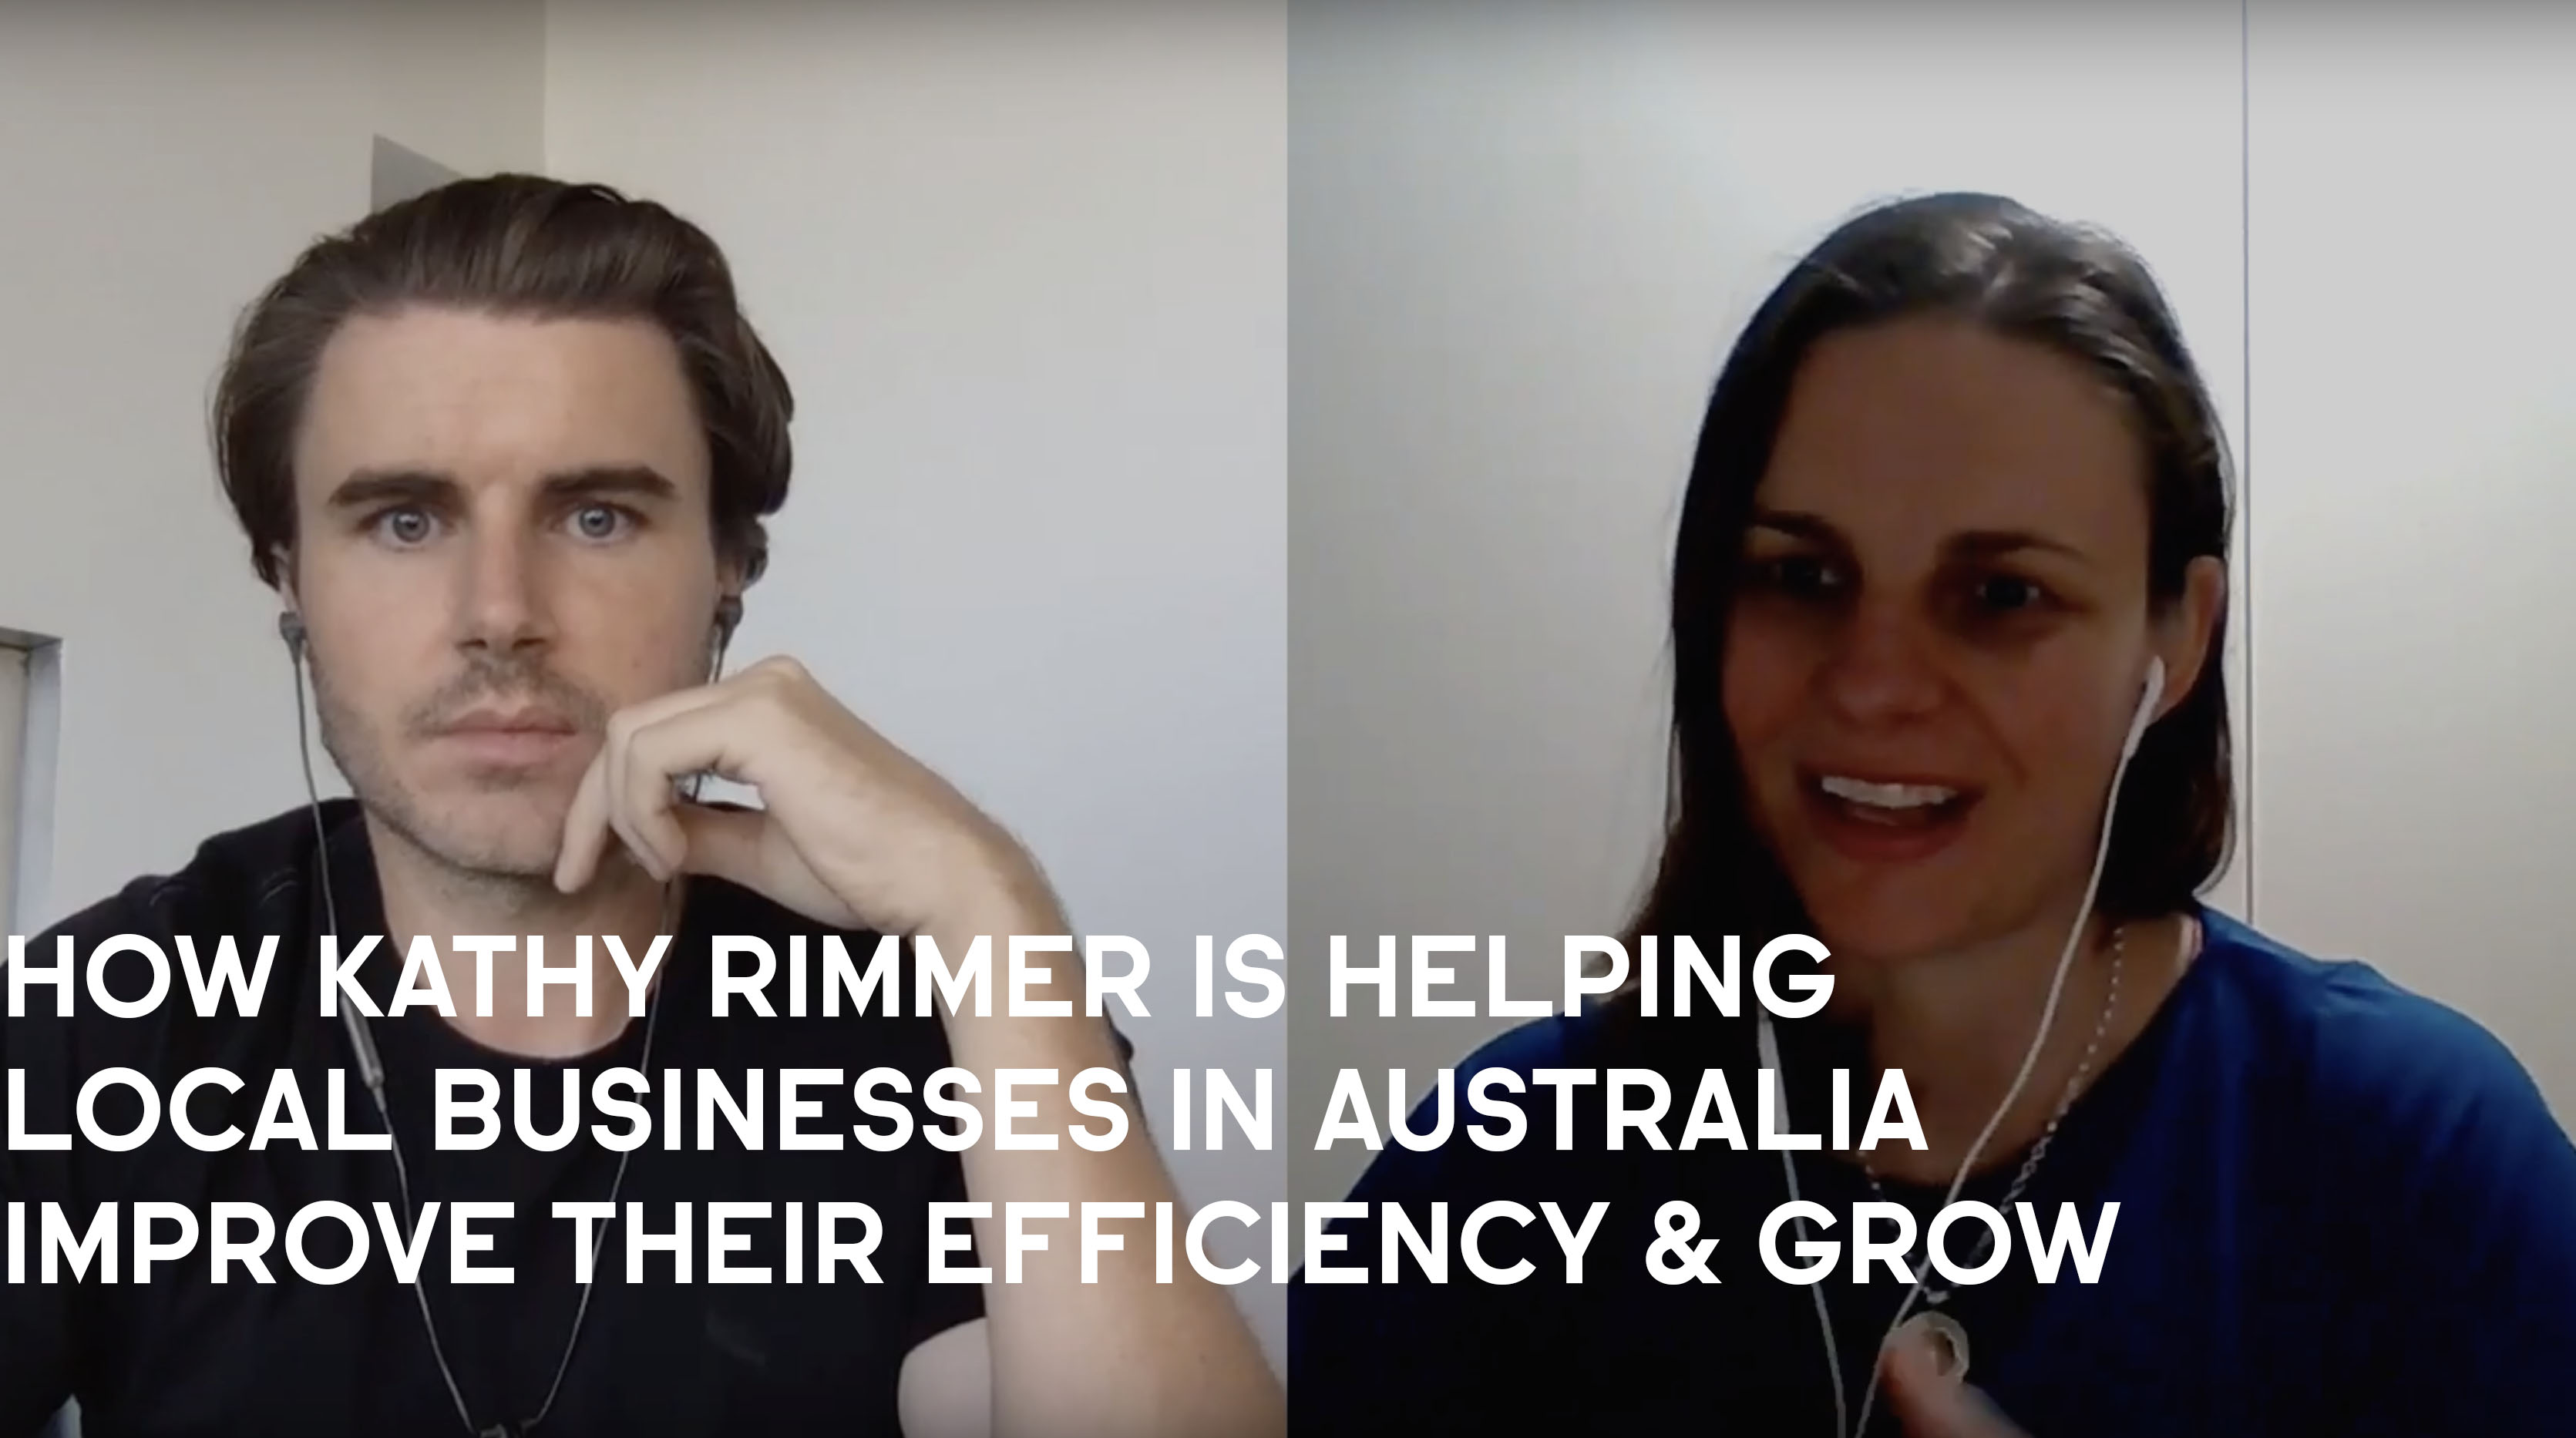 How Kathy Rimmer Is Helping Local Businesses In Australia Improve Efficiency & Grow